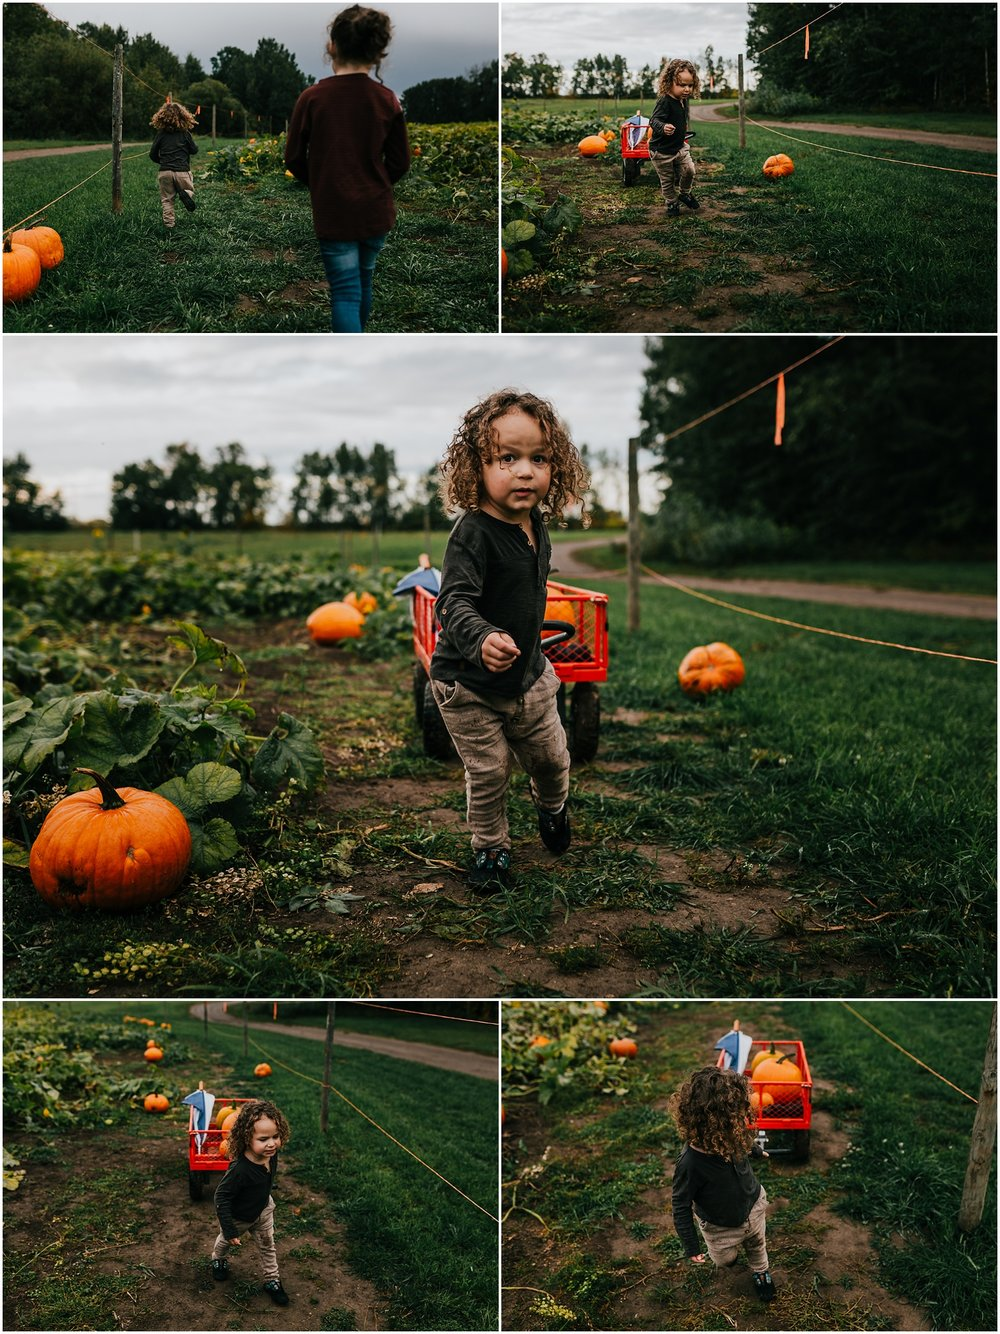 Edmonton Photographer - Treelines Photography - Somerset Farms U-Pick - Pumpkin Patch